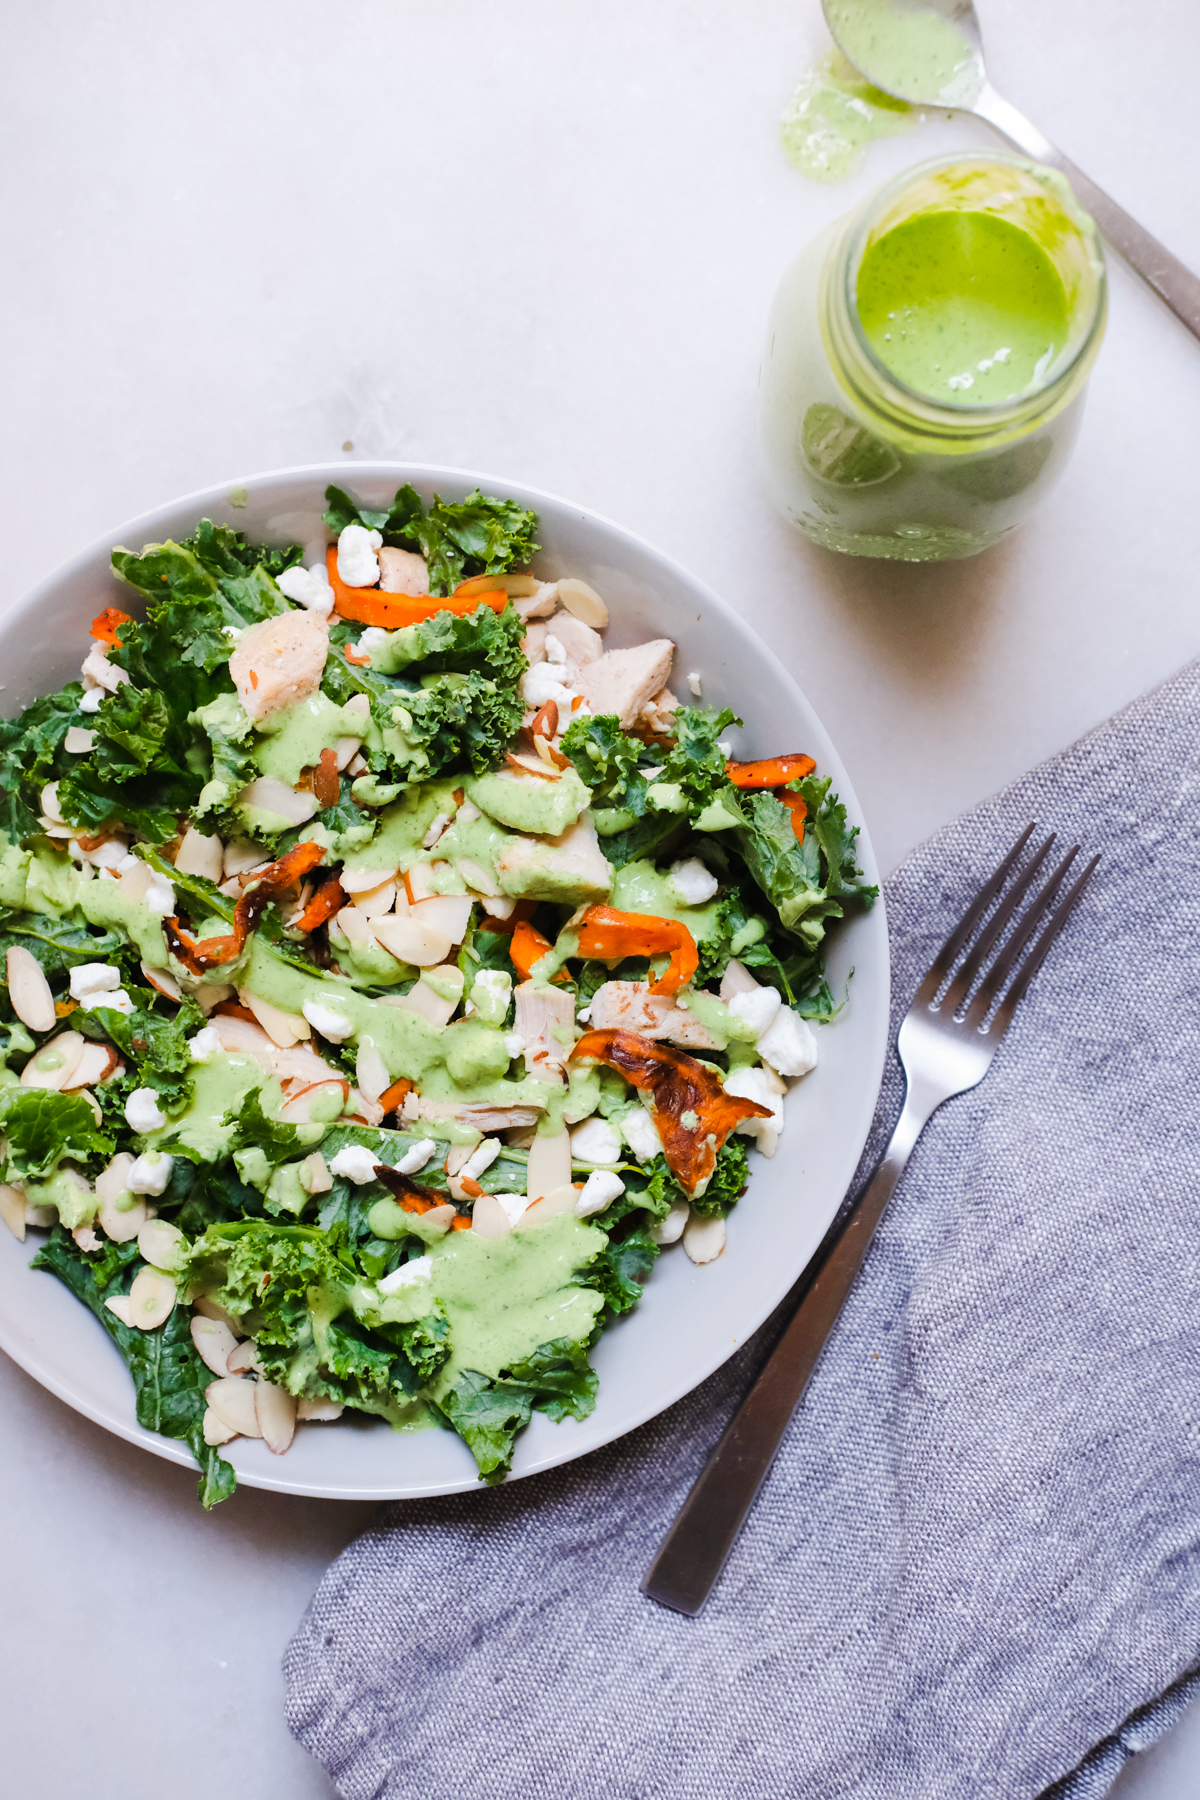 kale salad with green goddess dressing